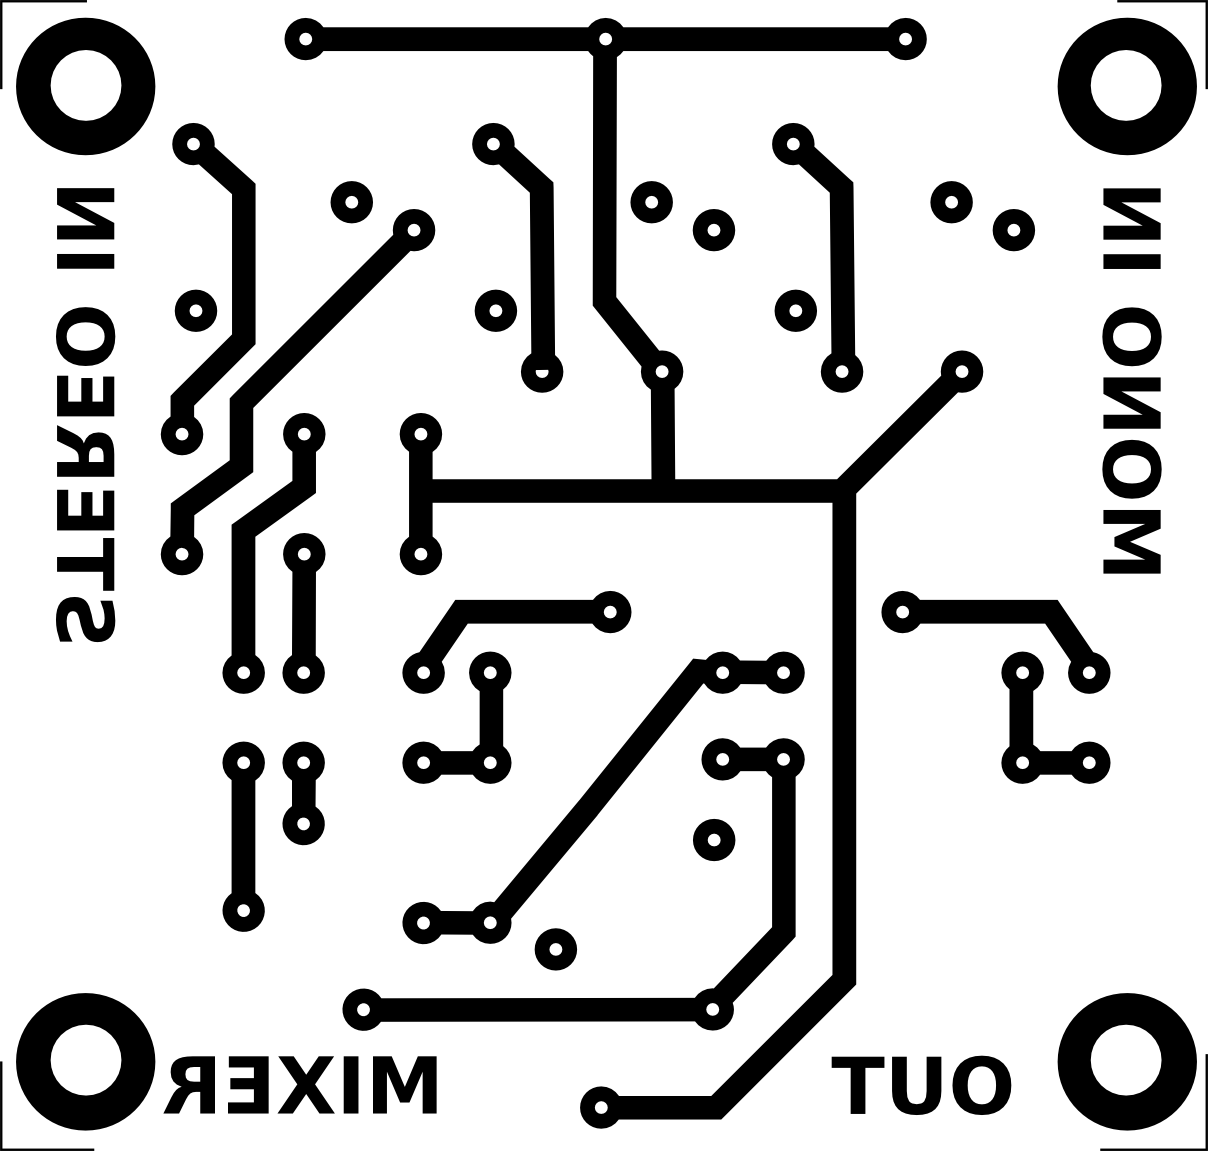 Therandomlab Simple Passive Mono Stereo To Audio Mixer Circuit 4 Channel Diagram Wiring Board 600dpi Aprox 51x485mm